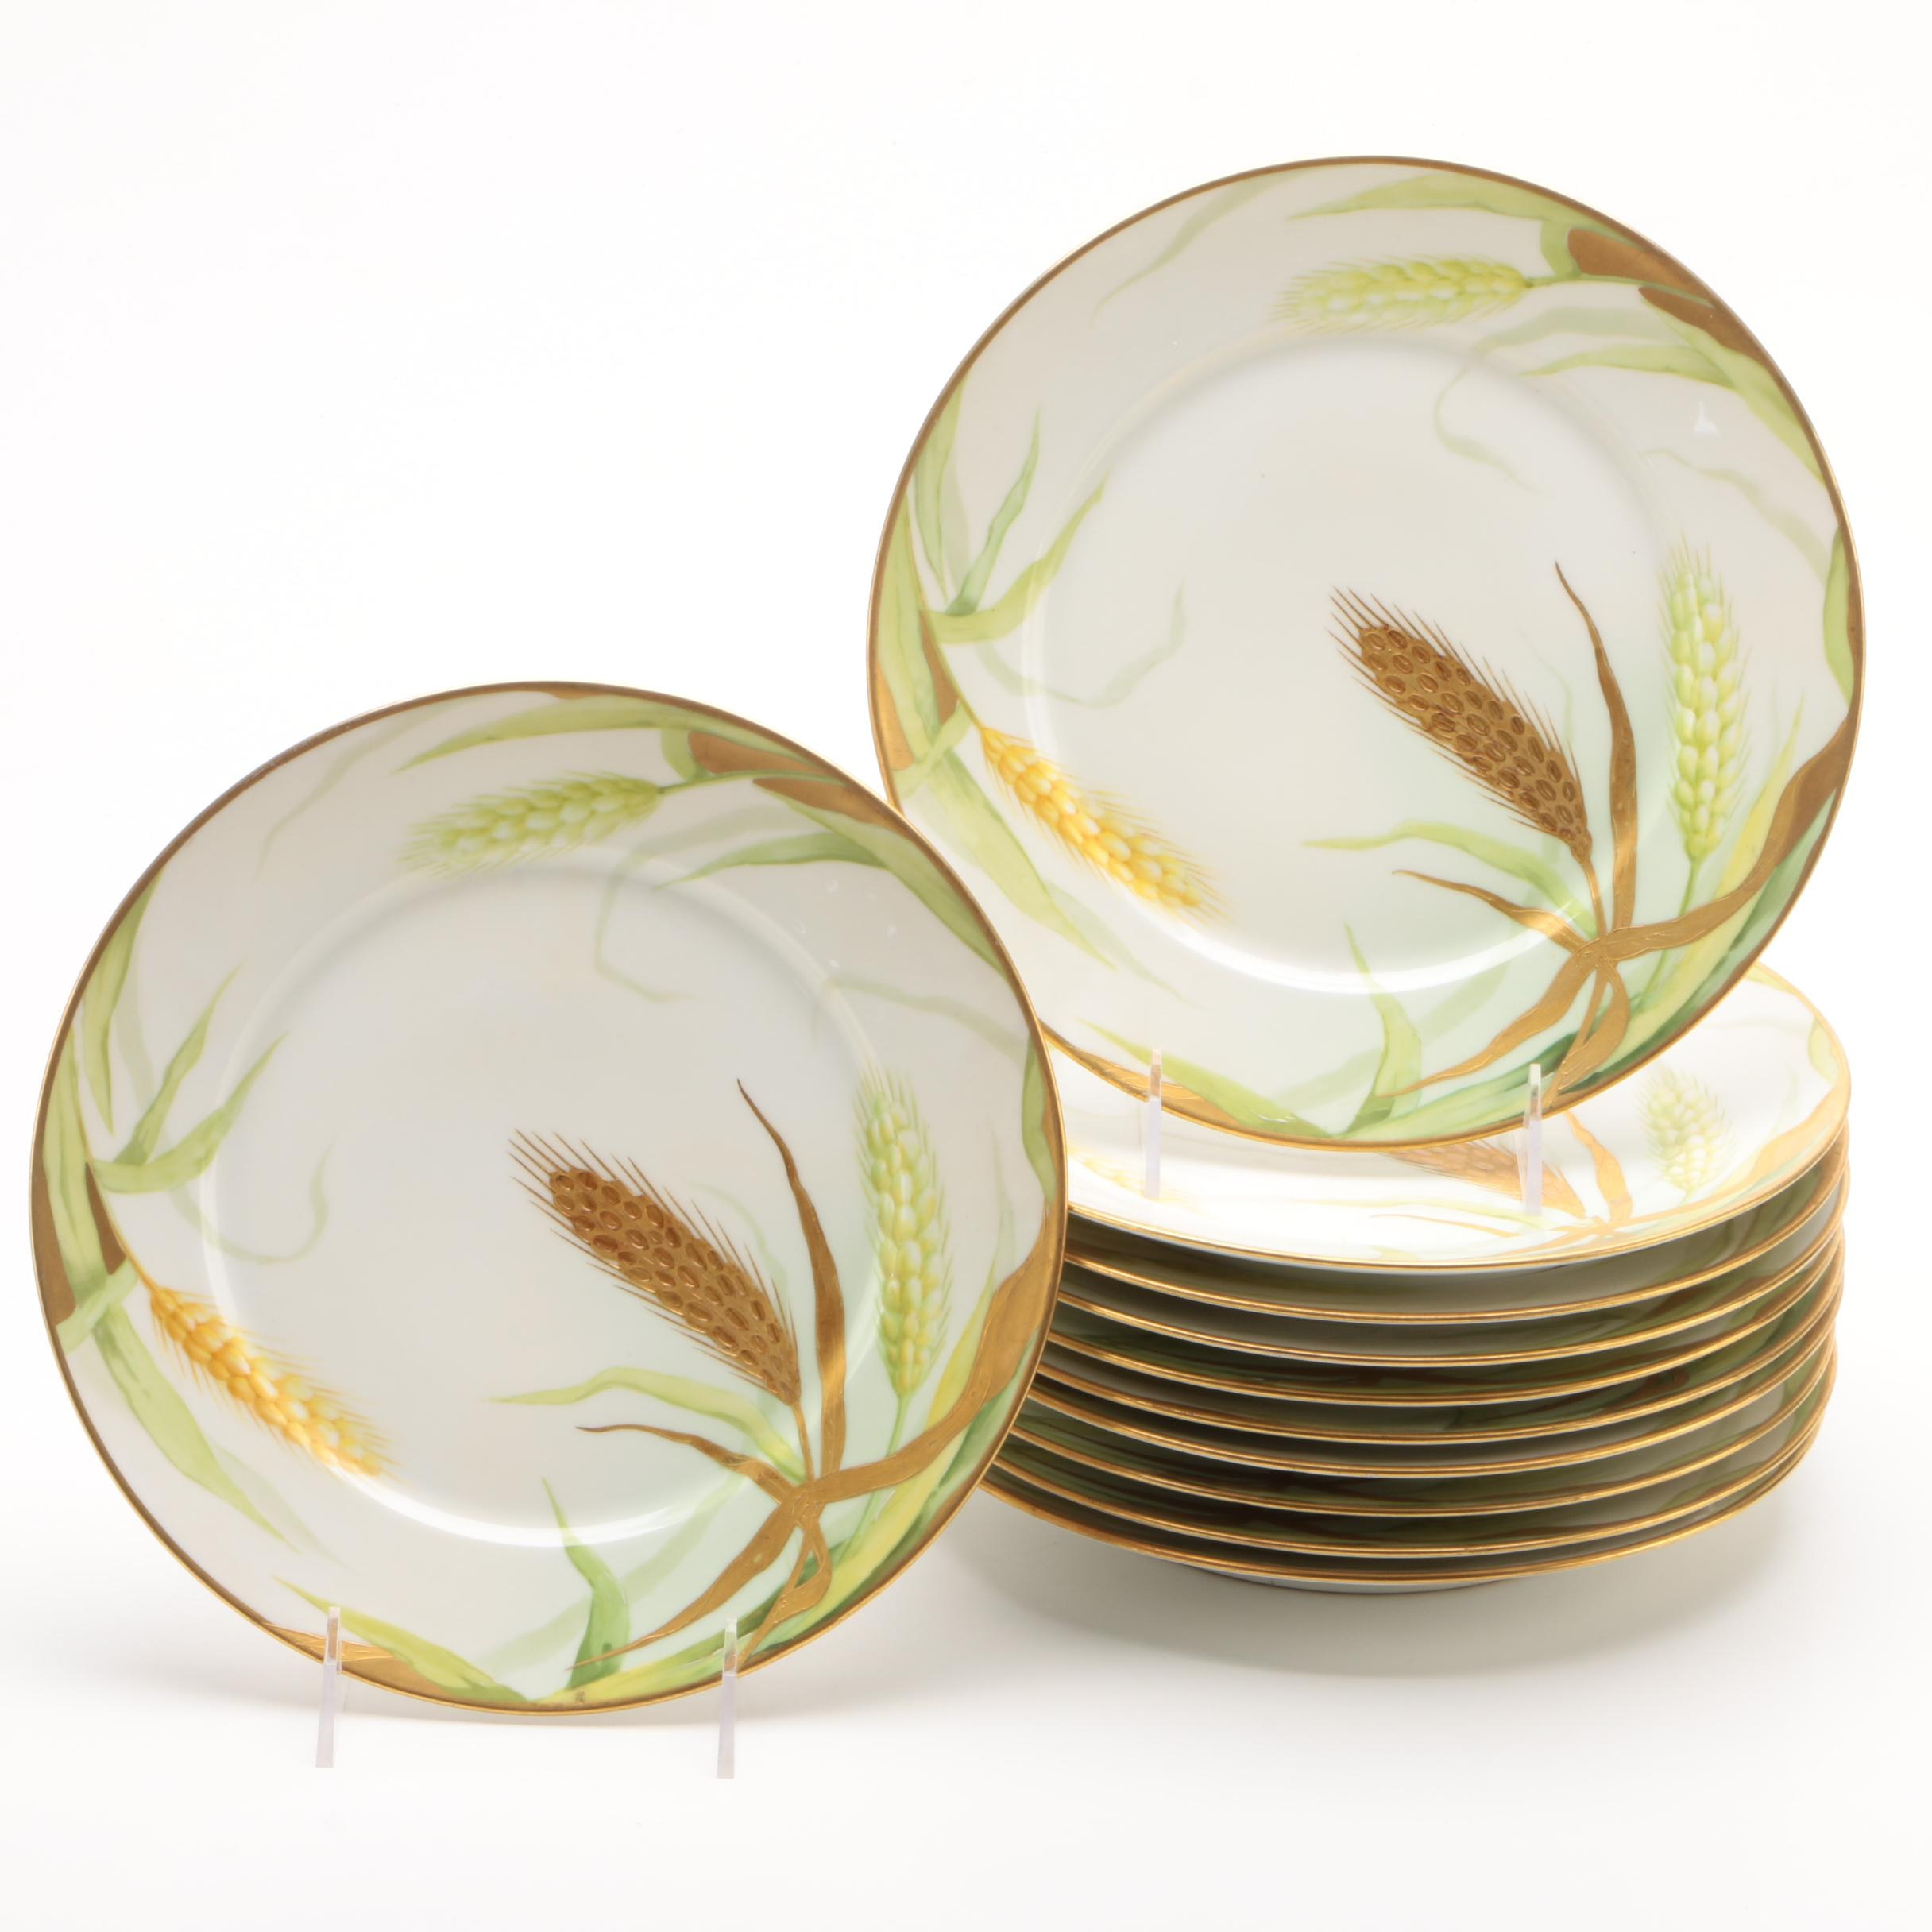 Old Abbey of Limoges Hand-Painted Porcelain Plates, Early 20th Century